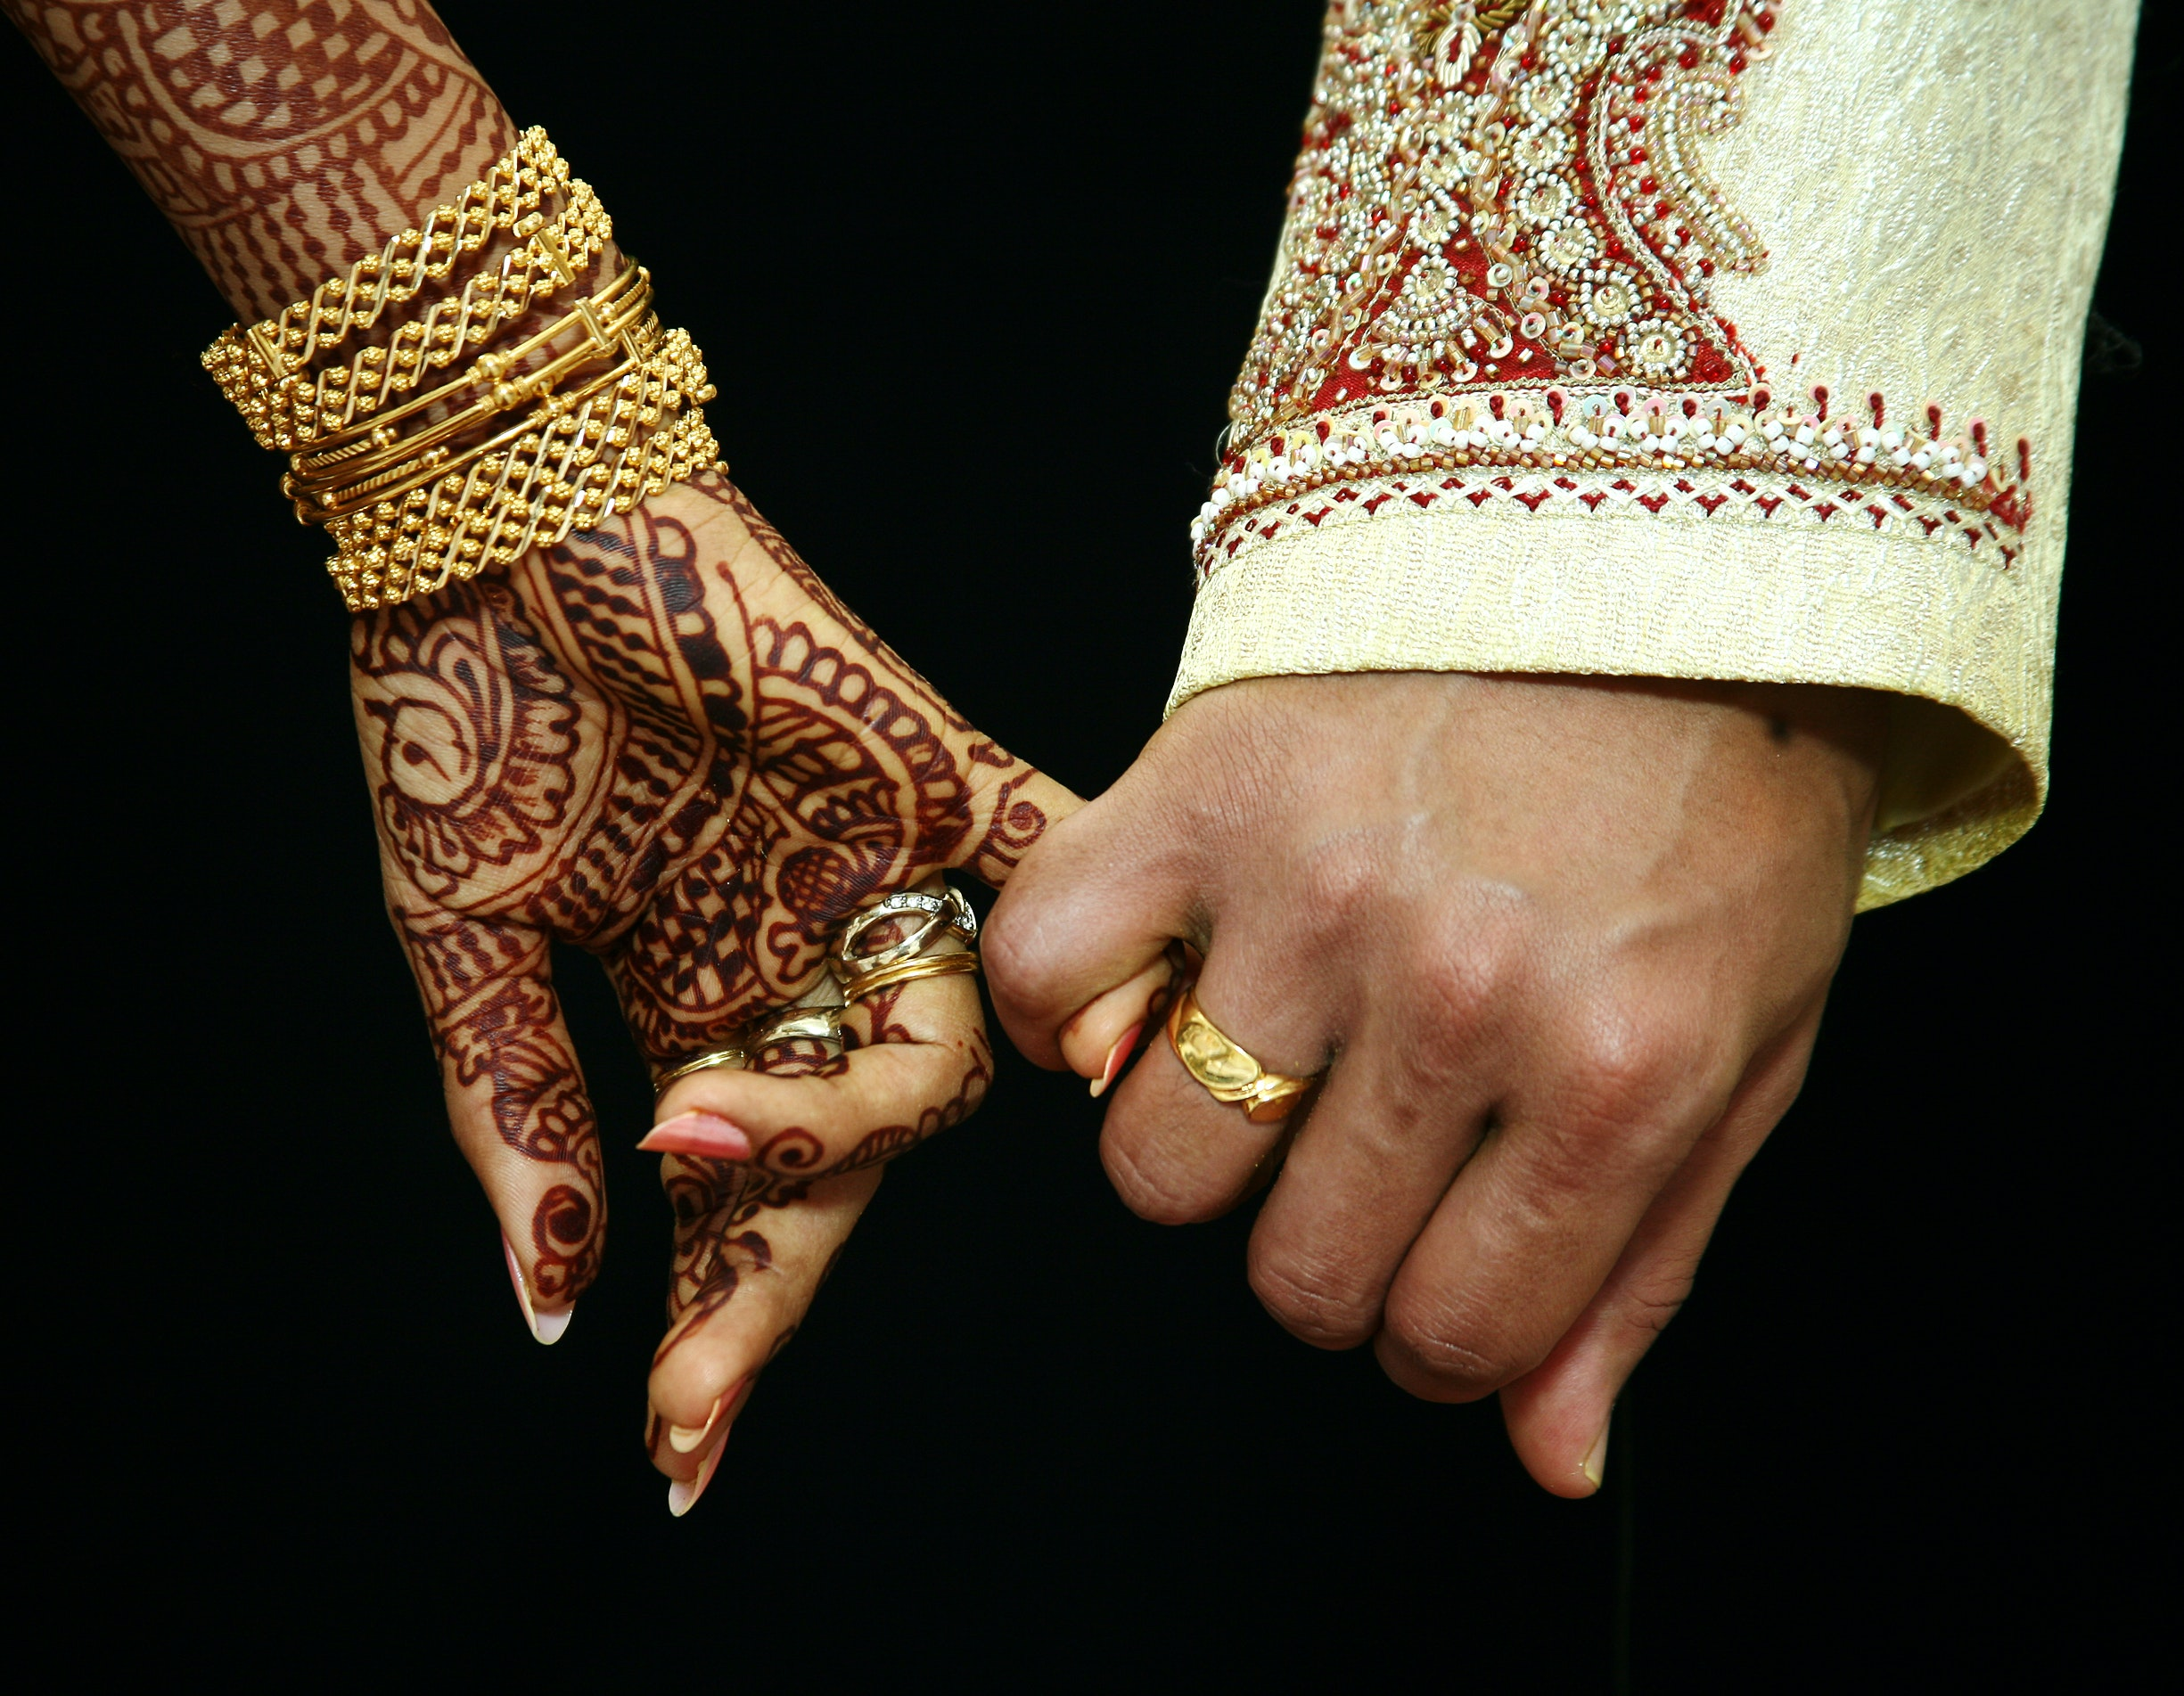 Dowry abuse does exist, but let's focus on the wider issues of economic abuse and coercive control